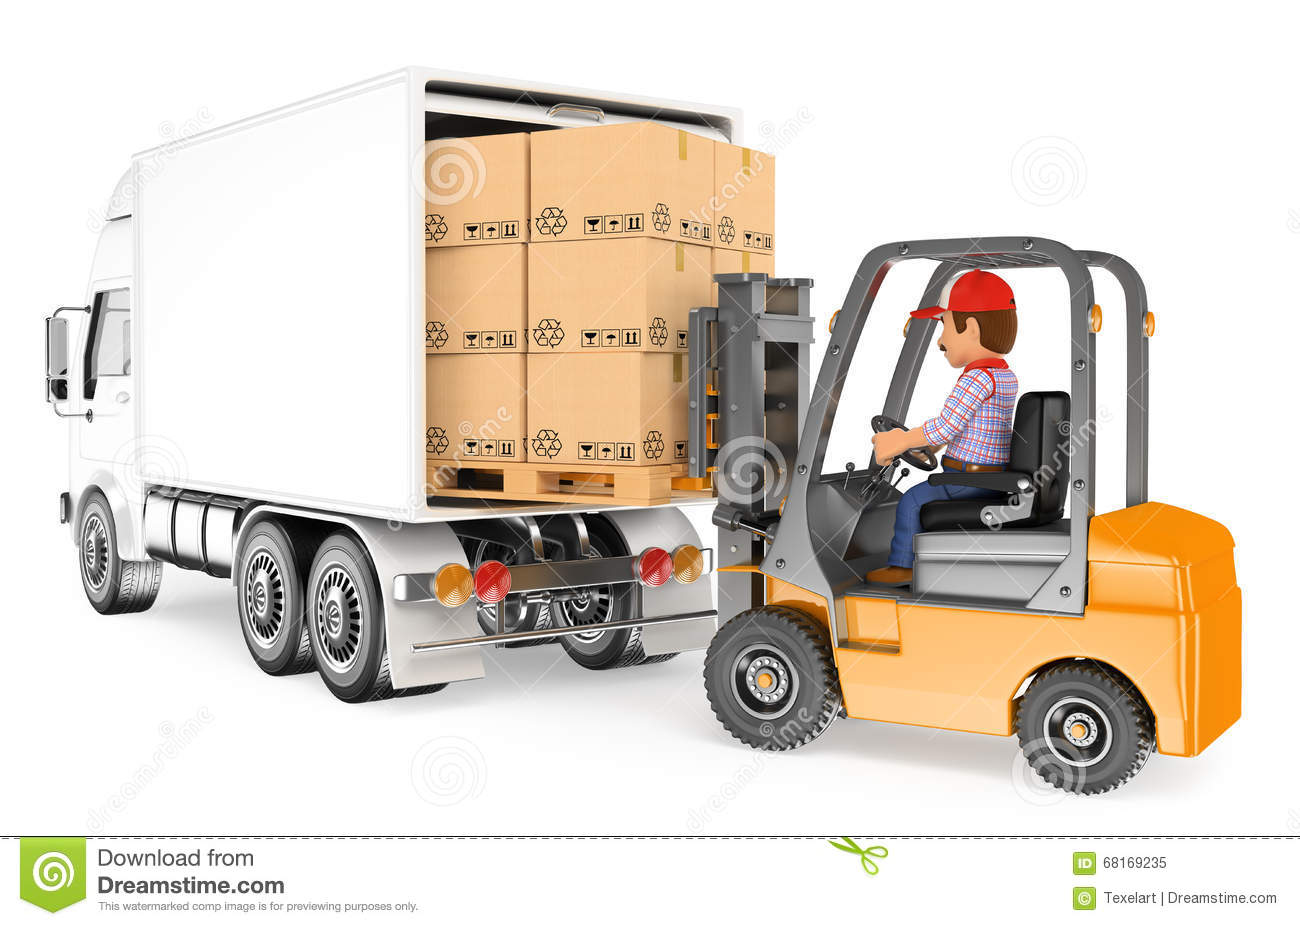 Illustration Stock Dirigez La Collection D Indicateurs De Panneau De Tableau De Bord De Voiture Et De Voyants D Alarme Image77601069 in addition Stock Illustration D Worker Driving Forklift Loading Truck Working People Isolated White Background Image68169235 also Ford Unveils One Of A Kind F 22 Raptor With 545 Hp furthermore Royalty Free Stock Photo Moving Truck Image5819445 also Sic 1960 Custom Cadillac. on truck car audio